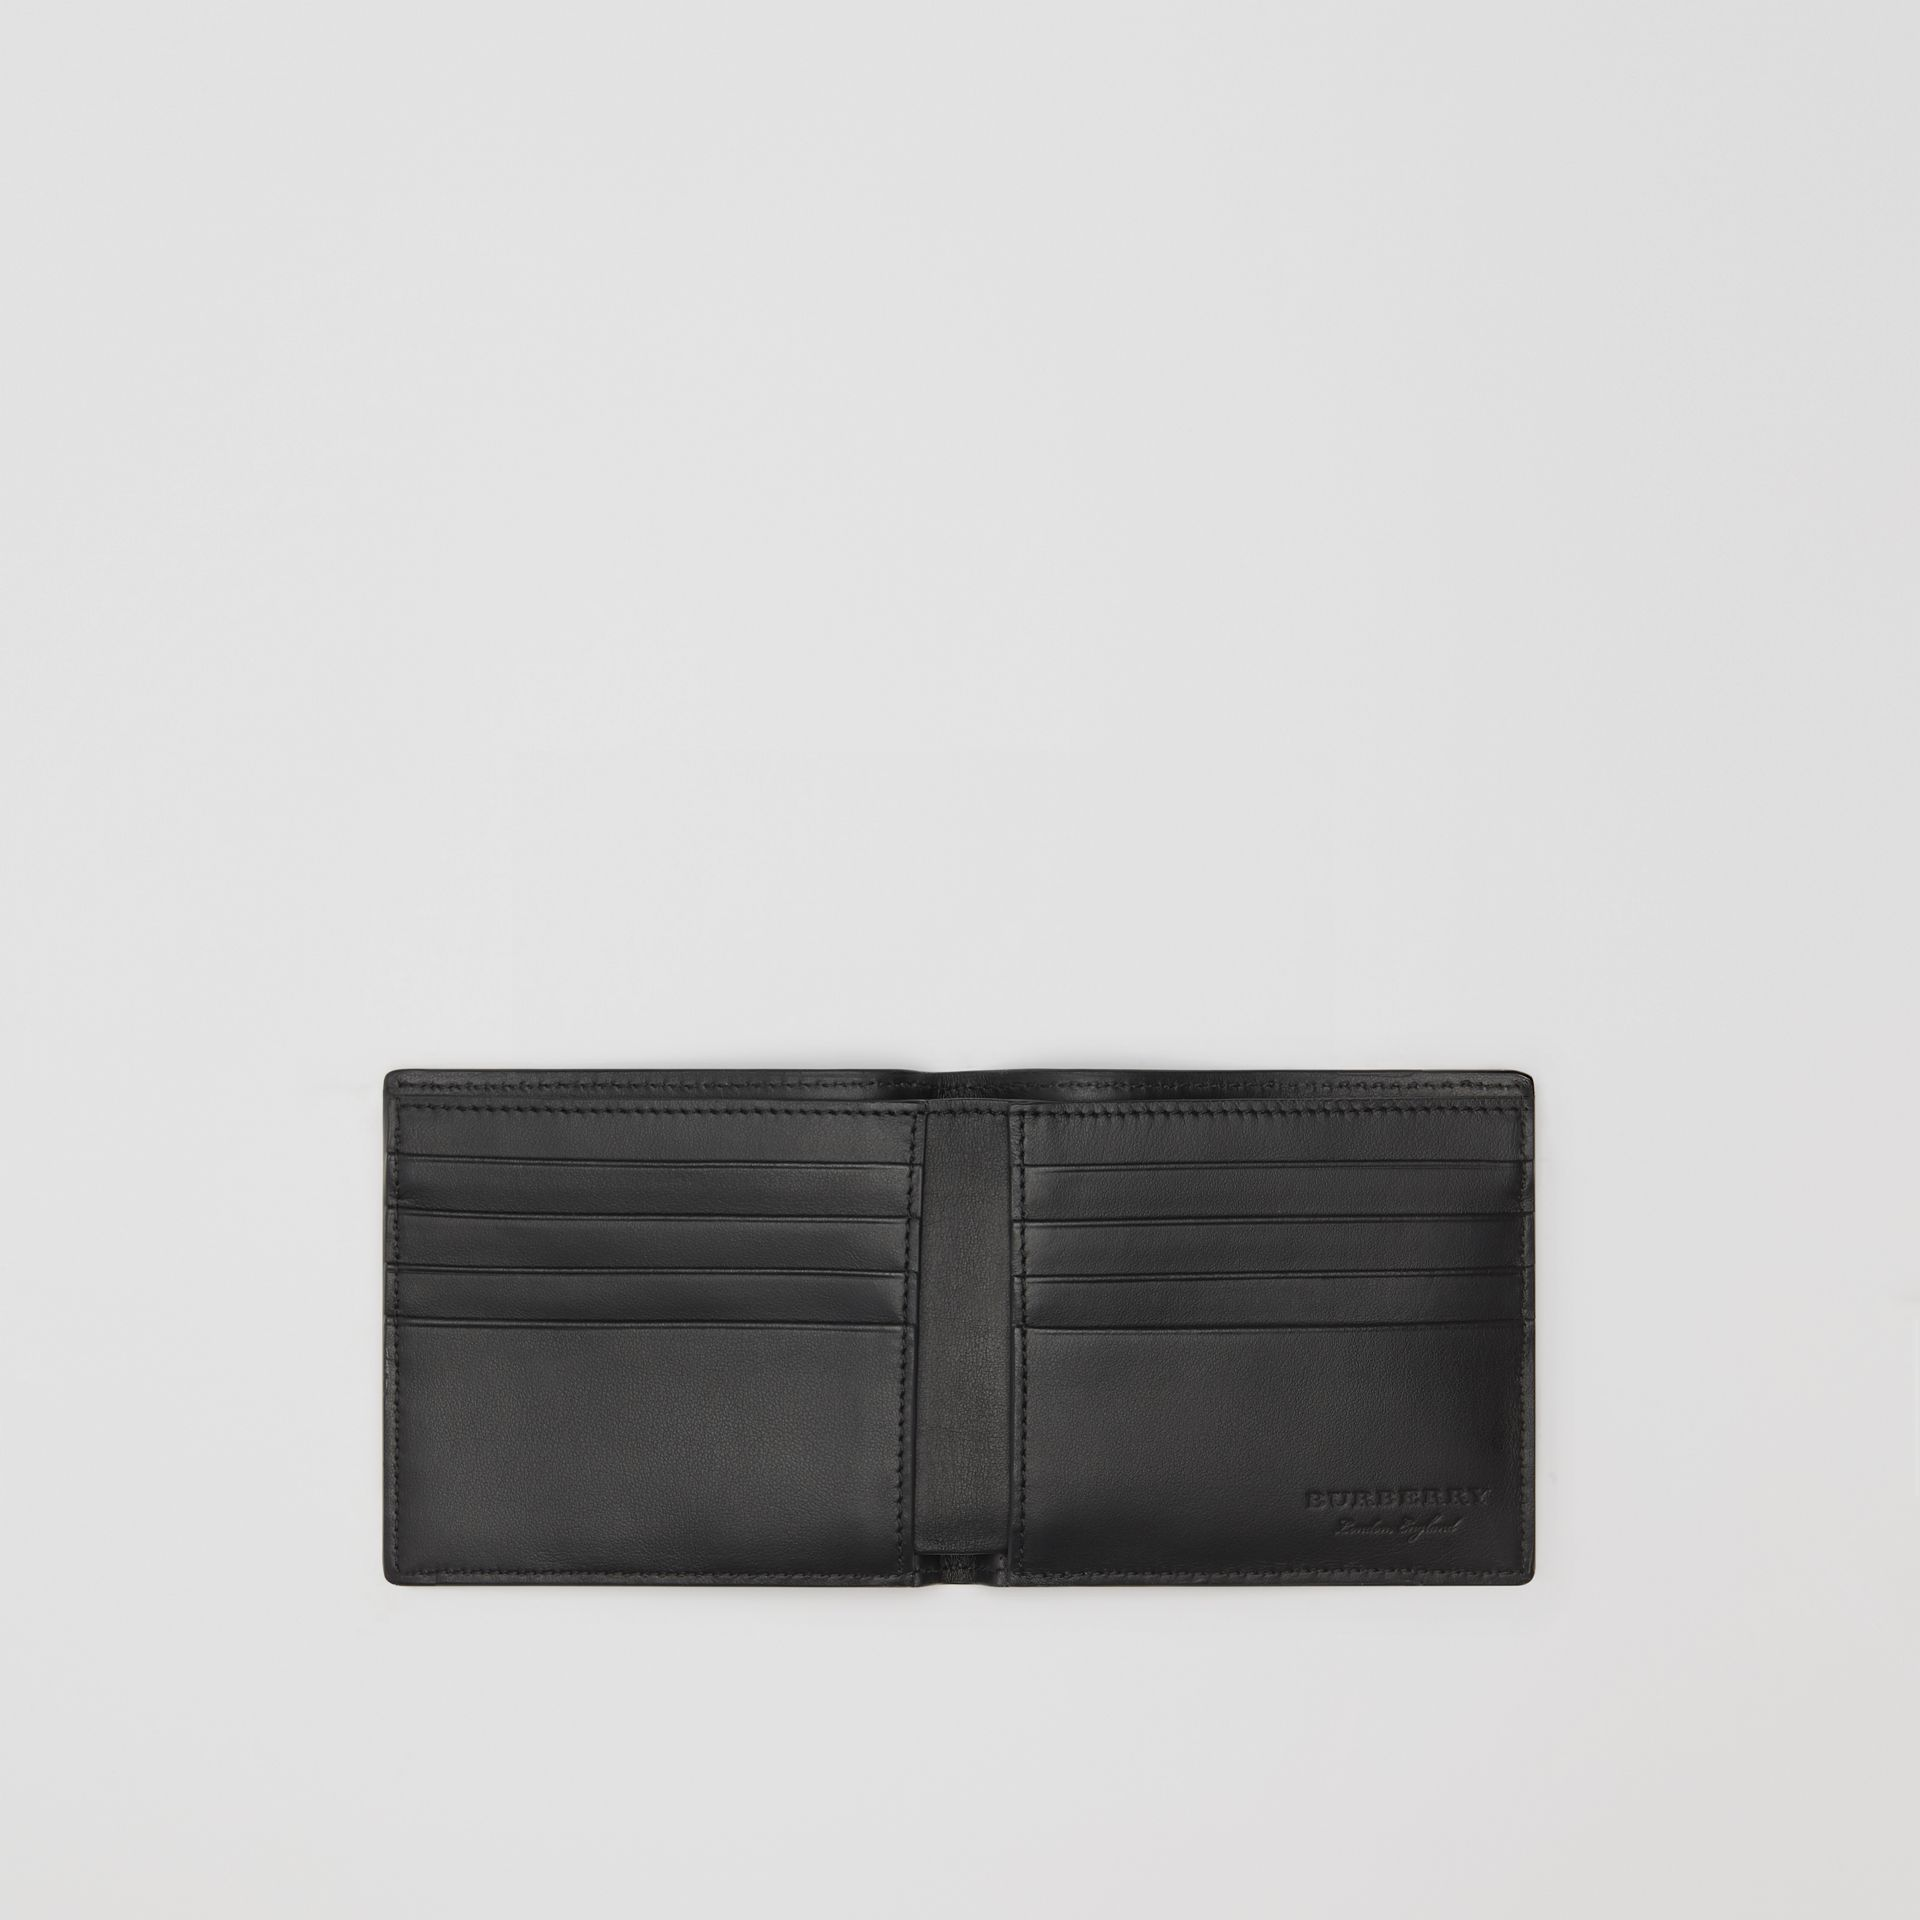 Embossed Leather Bifold Wallet in Black - Men | Burberry Canada - gallery image 3